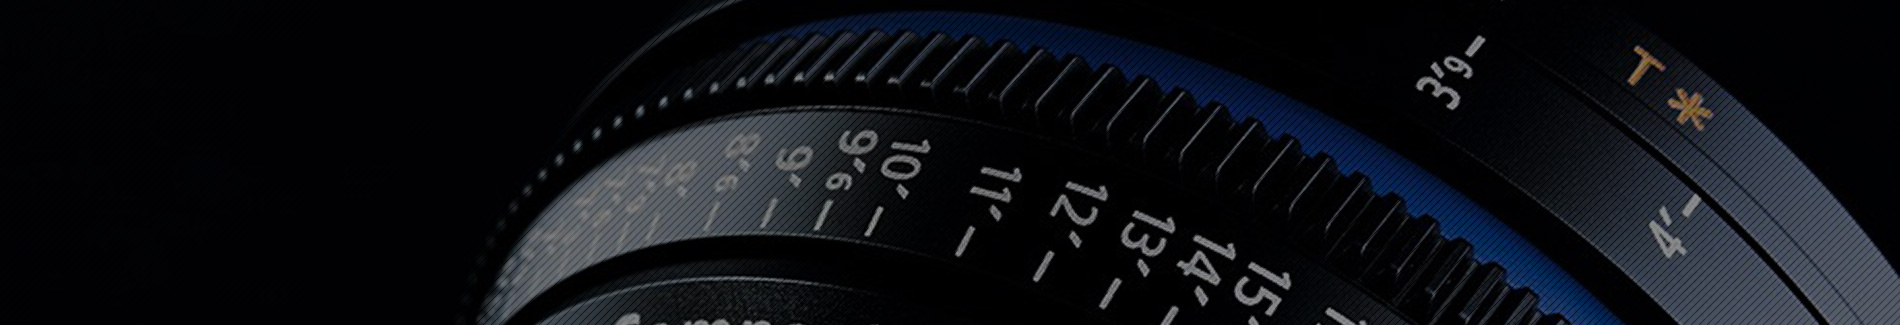 Difference between Still and Cine lenses